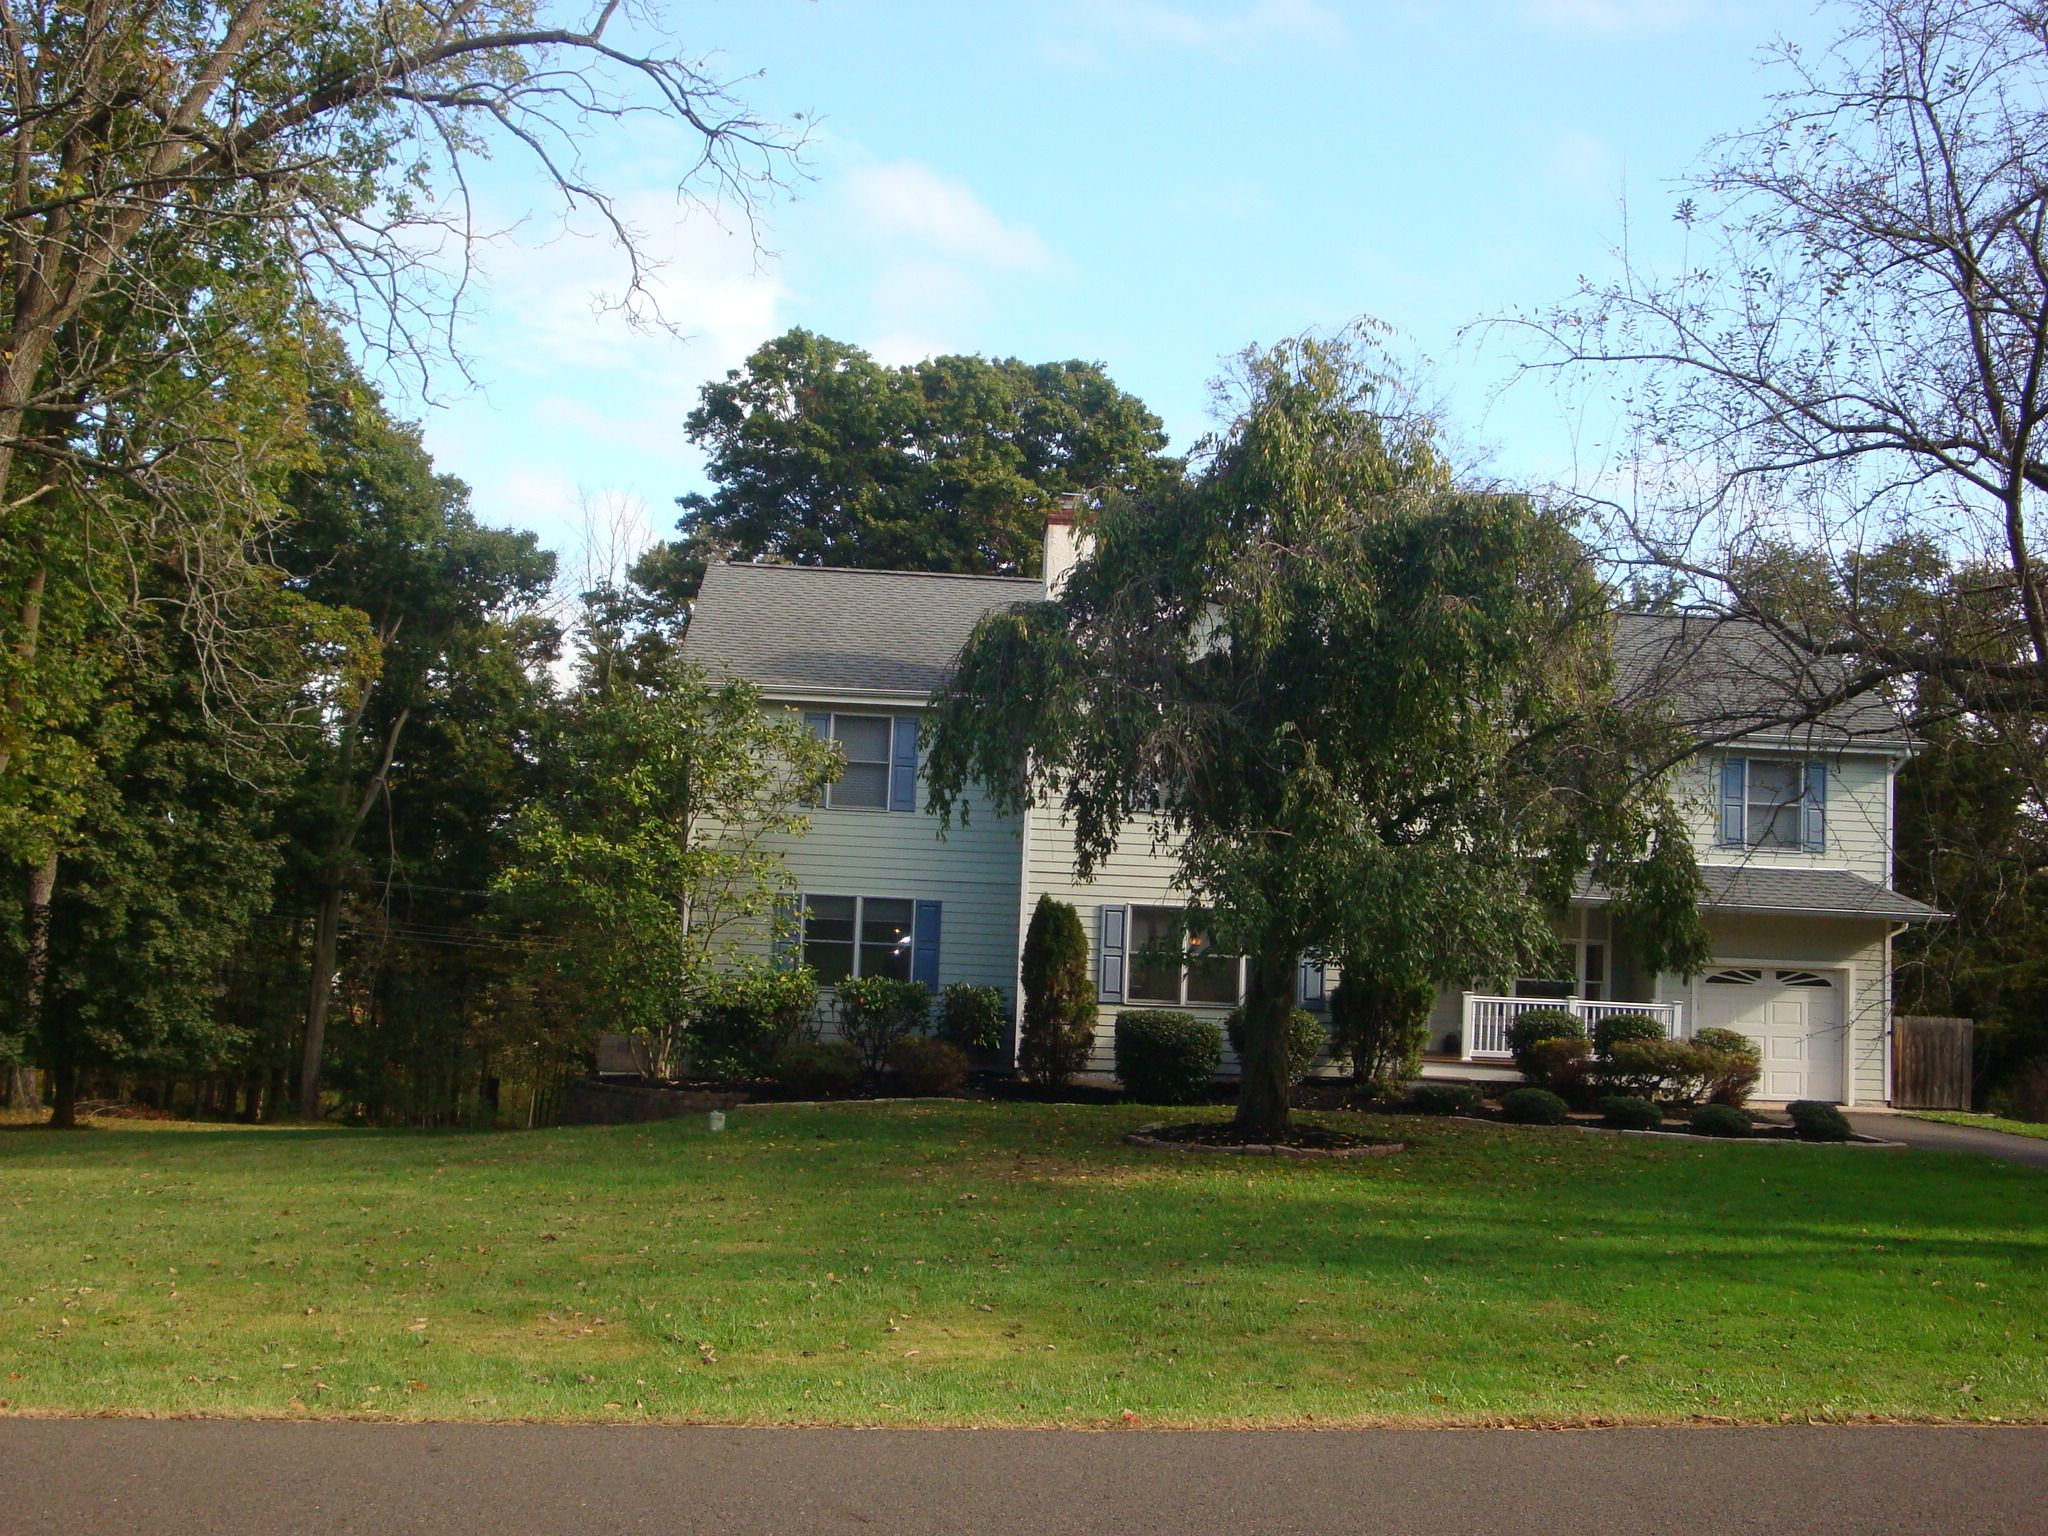 172 williams ave for sale newtown pa trulia